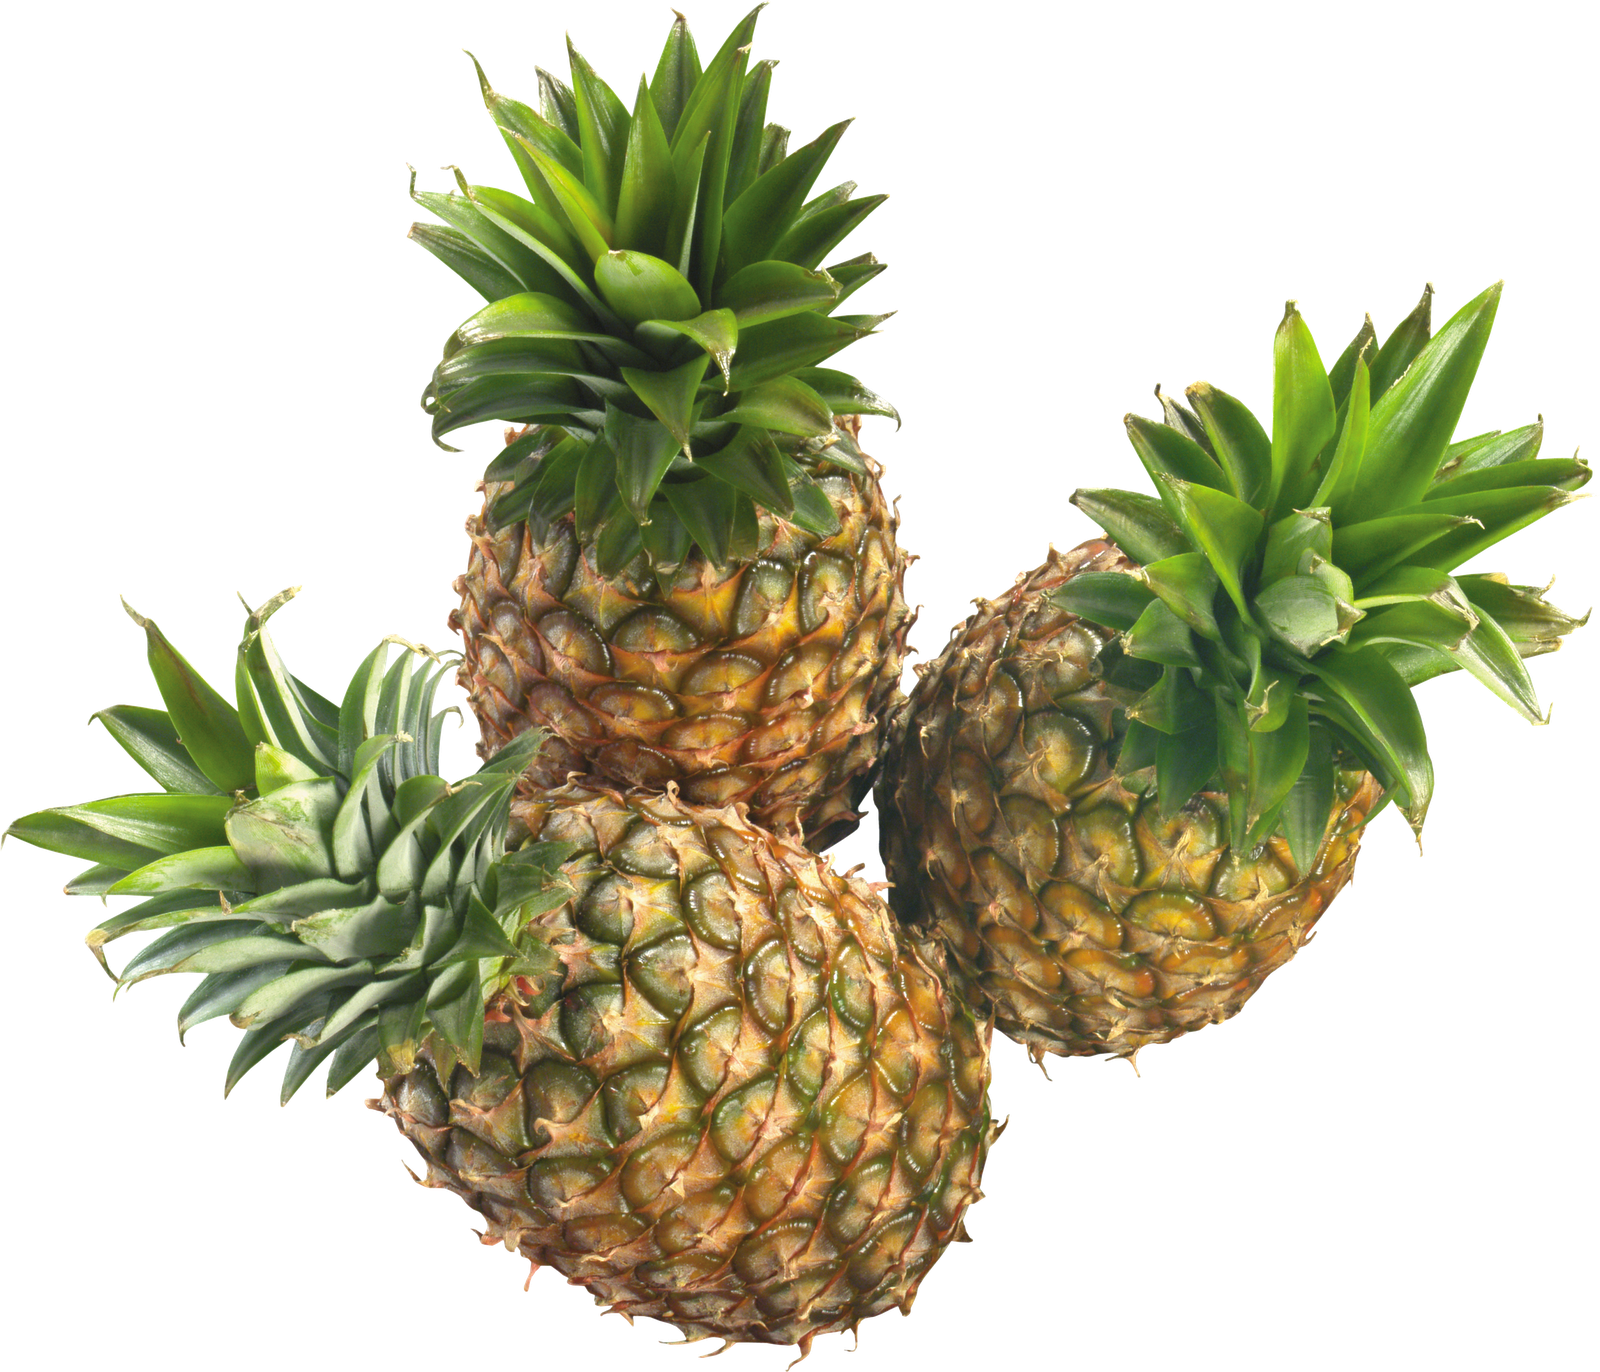 Ananas resimleri for Photographs for sale online